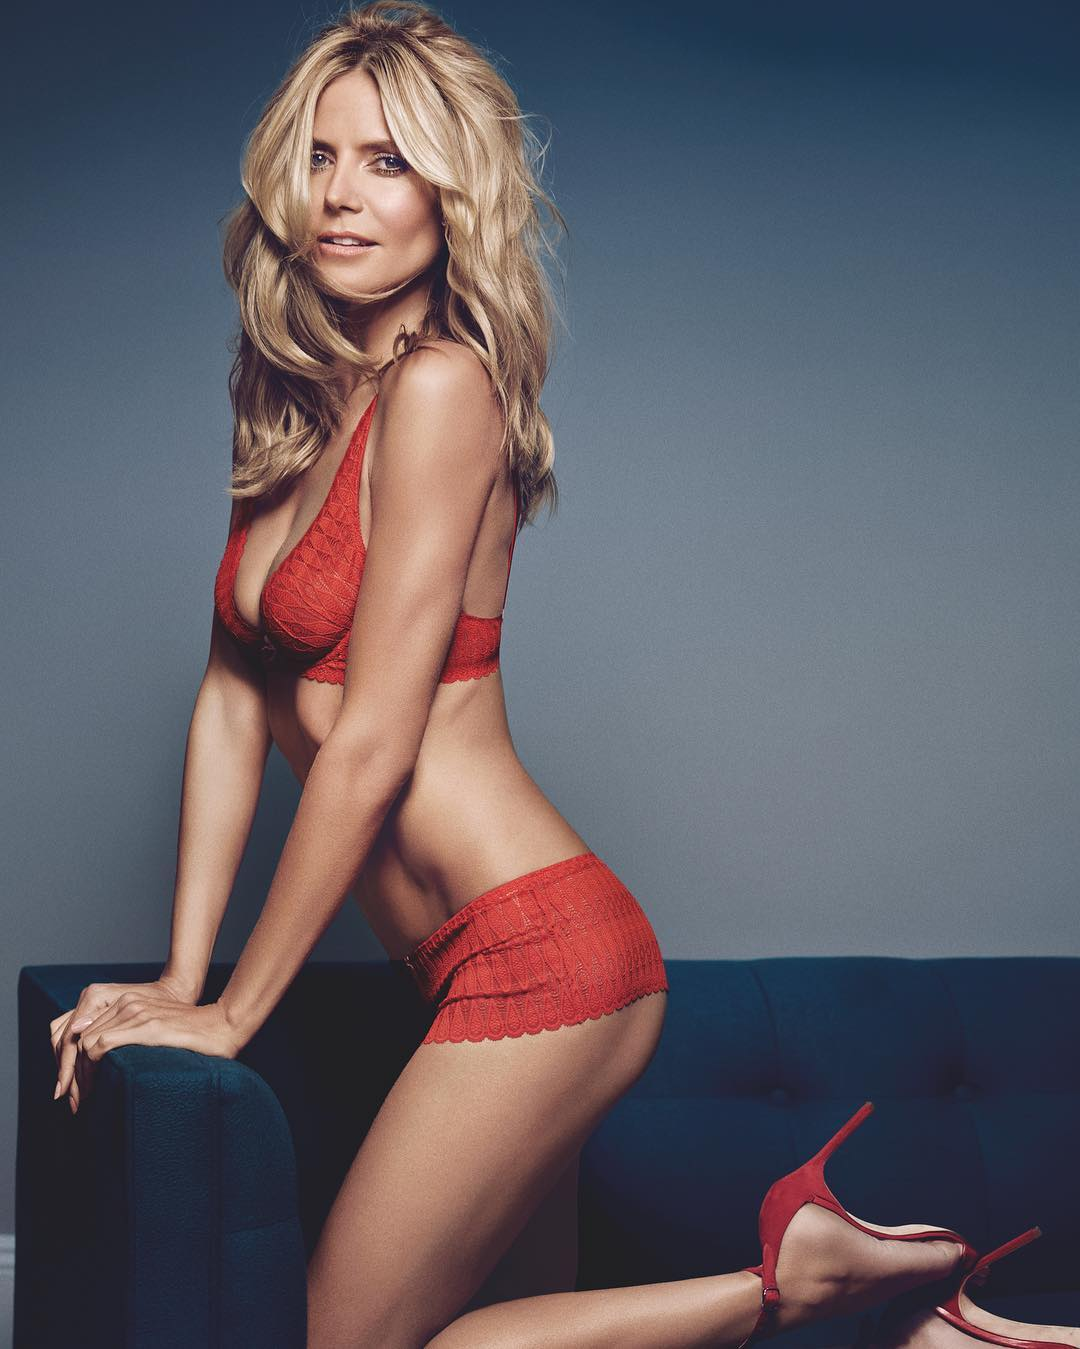 Heidi Klum Hot Photoshoot